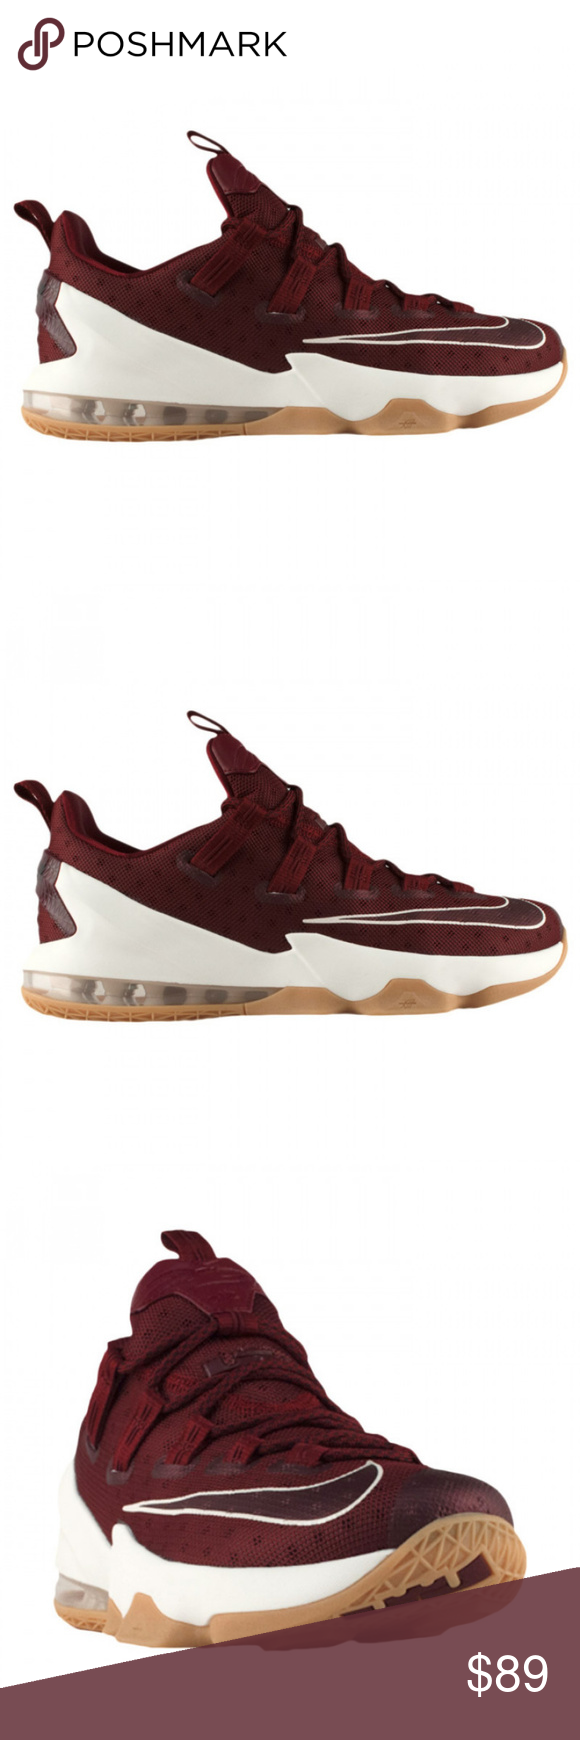 on sale babc1 4e9bc NIKE Lebron XIII Low Mens Basketball Sneakers 13 BRAND NEW WITHOUT BOX Nike  LeBron XIII Low